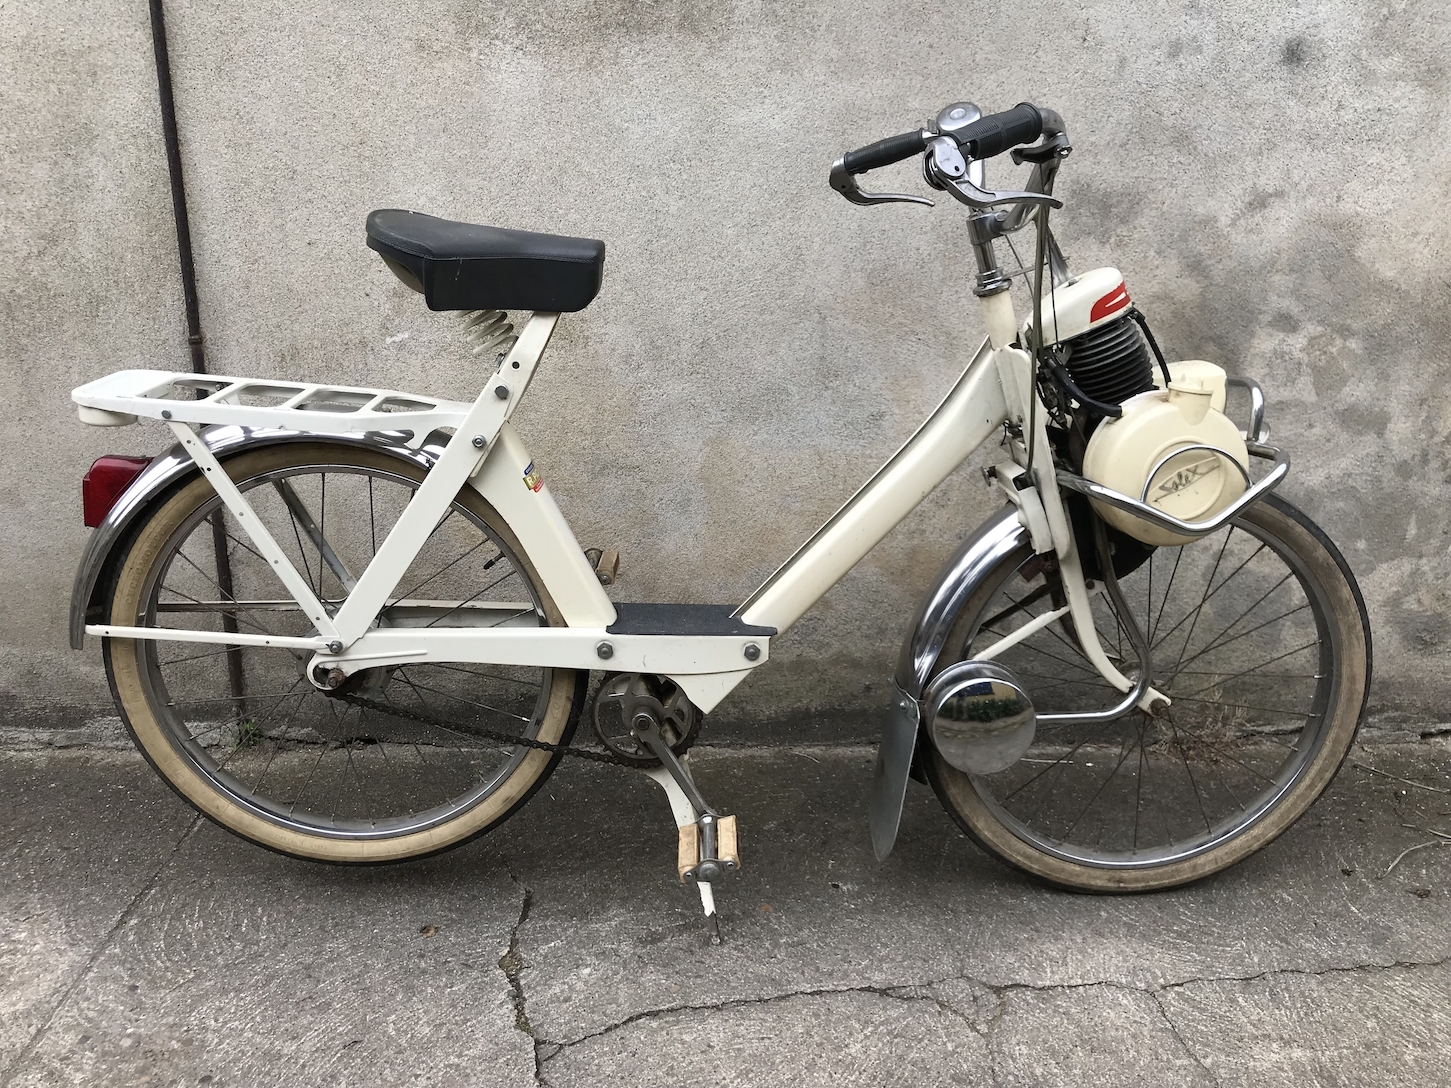 VELOSOLEX 3800 SUPERLUXE BLANC VELOCYCLO 3